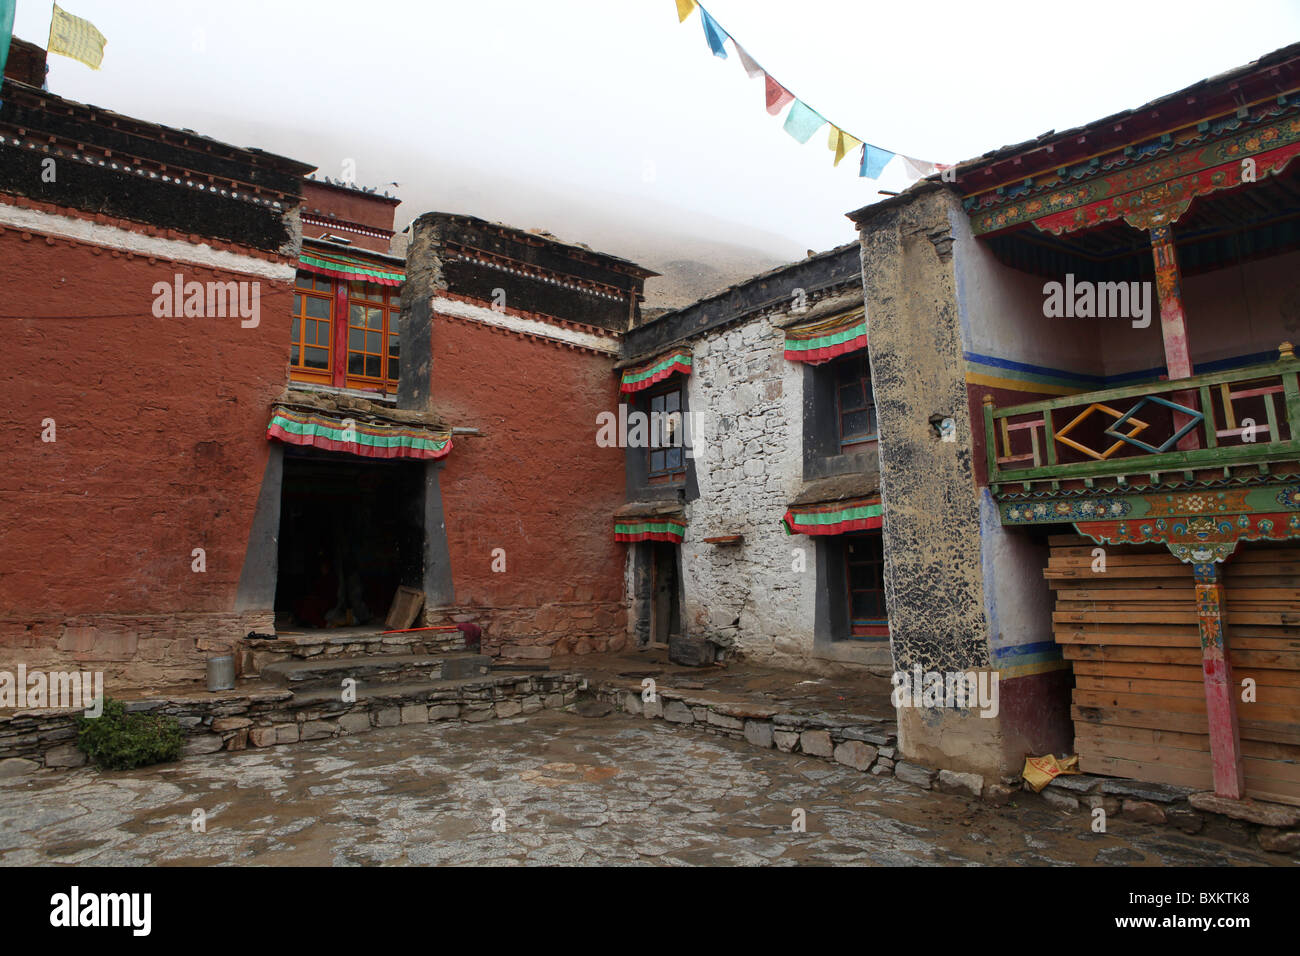 Rongbuk Monastery, a Tibetan Buddhist monastery in the Basum township close to Everest Base Camp, Tibet, China. - Stock Image